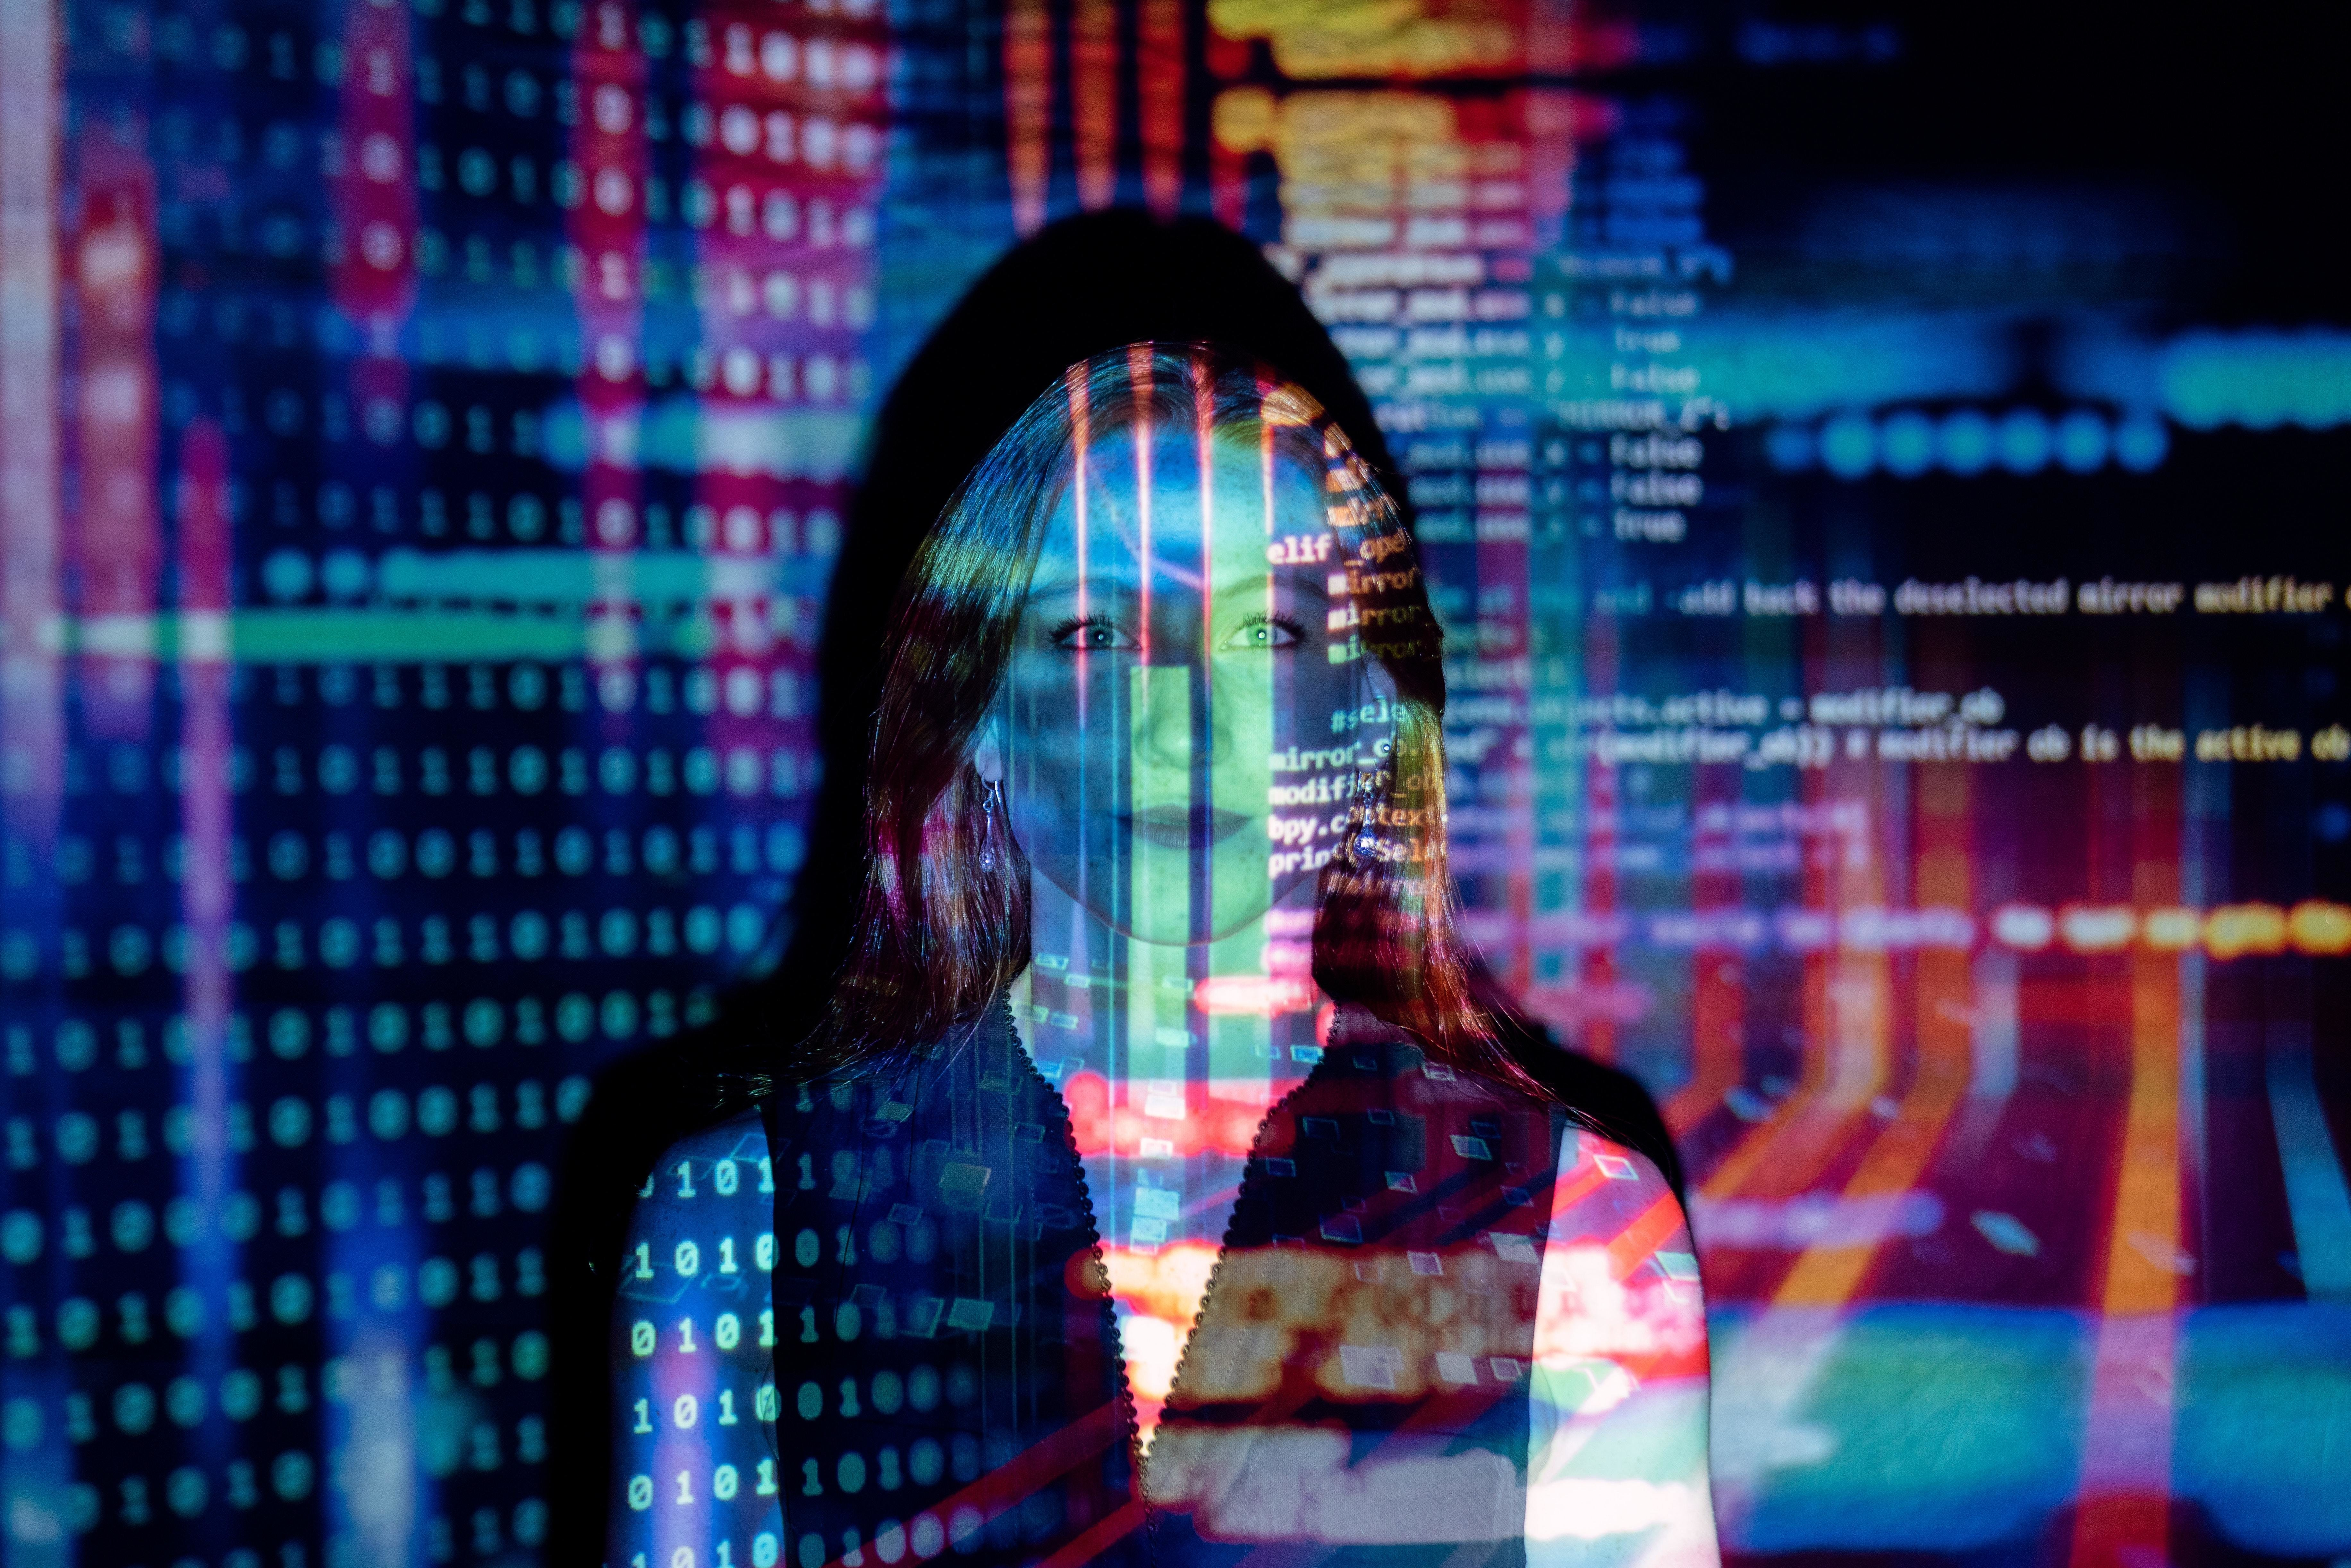 Computer code projected onto woman's face.